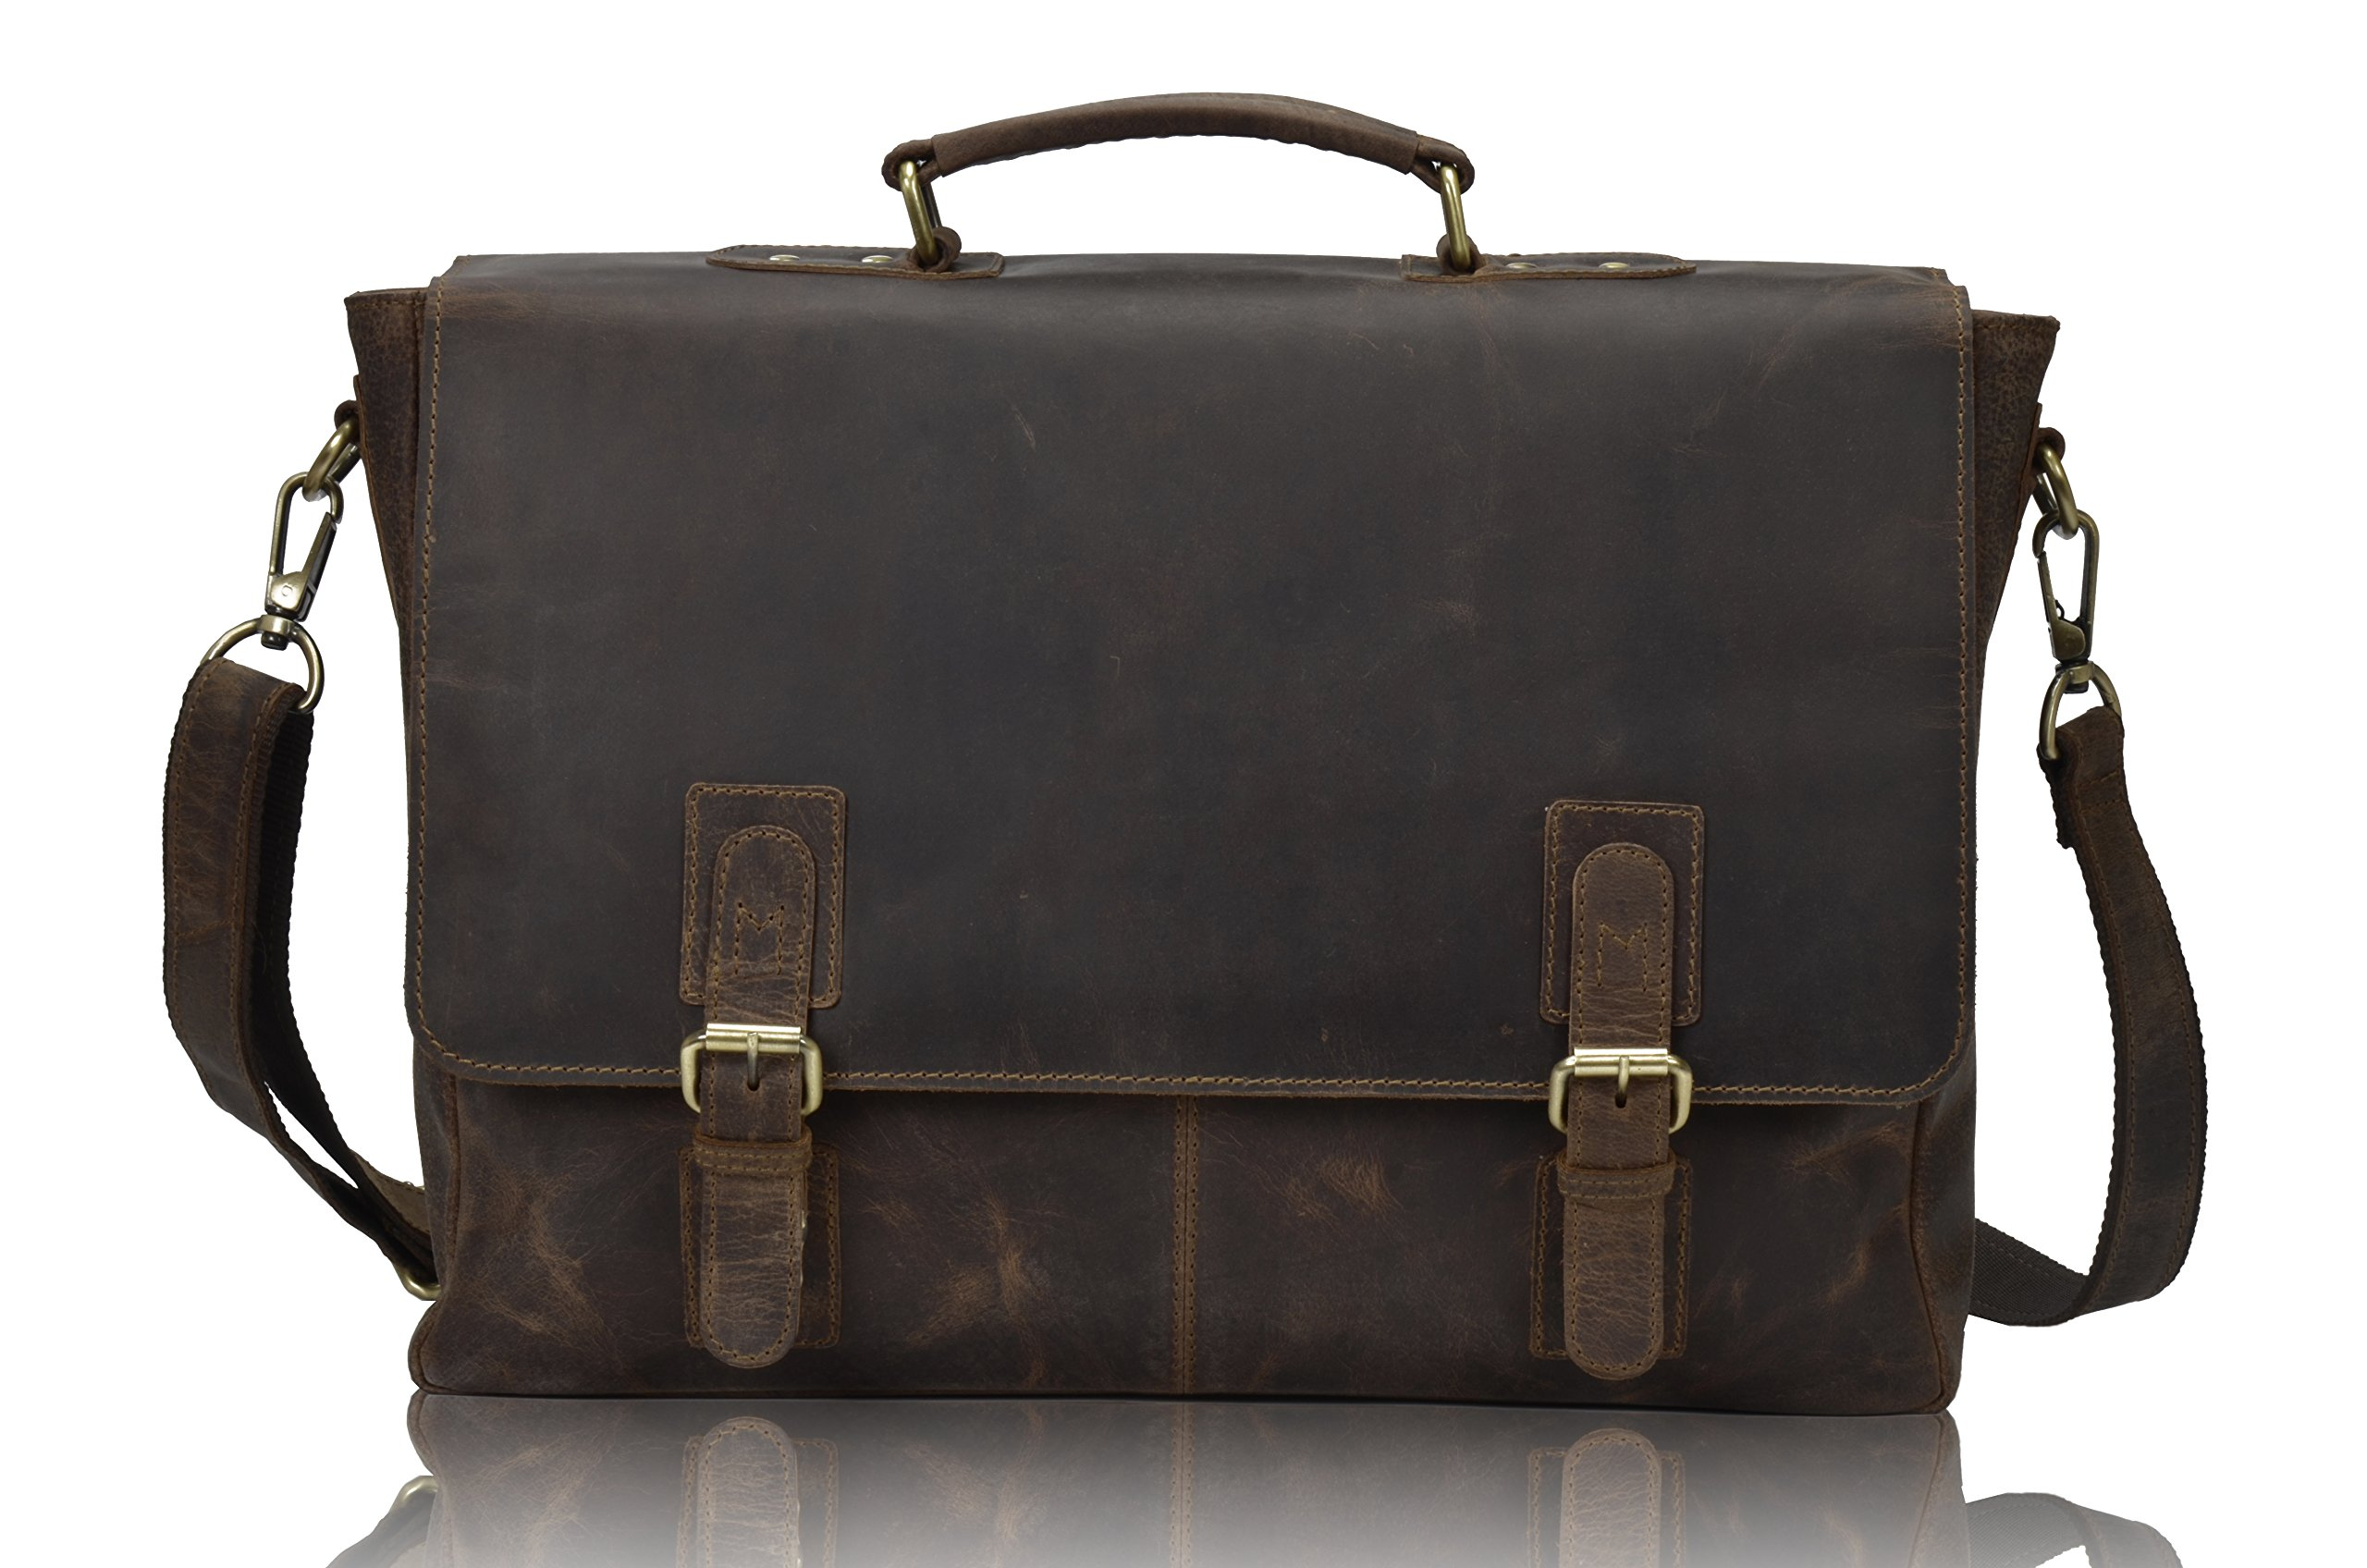 TONY'S BAGS Rustic Leather Laptop Bags Briefcase Computer bags in Vintage Leather